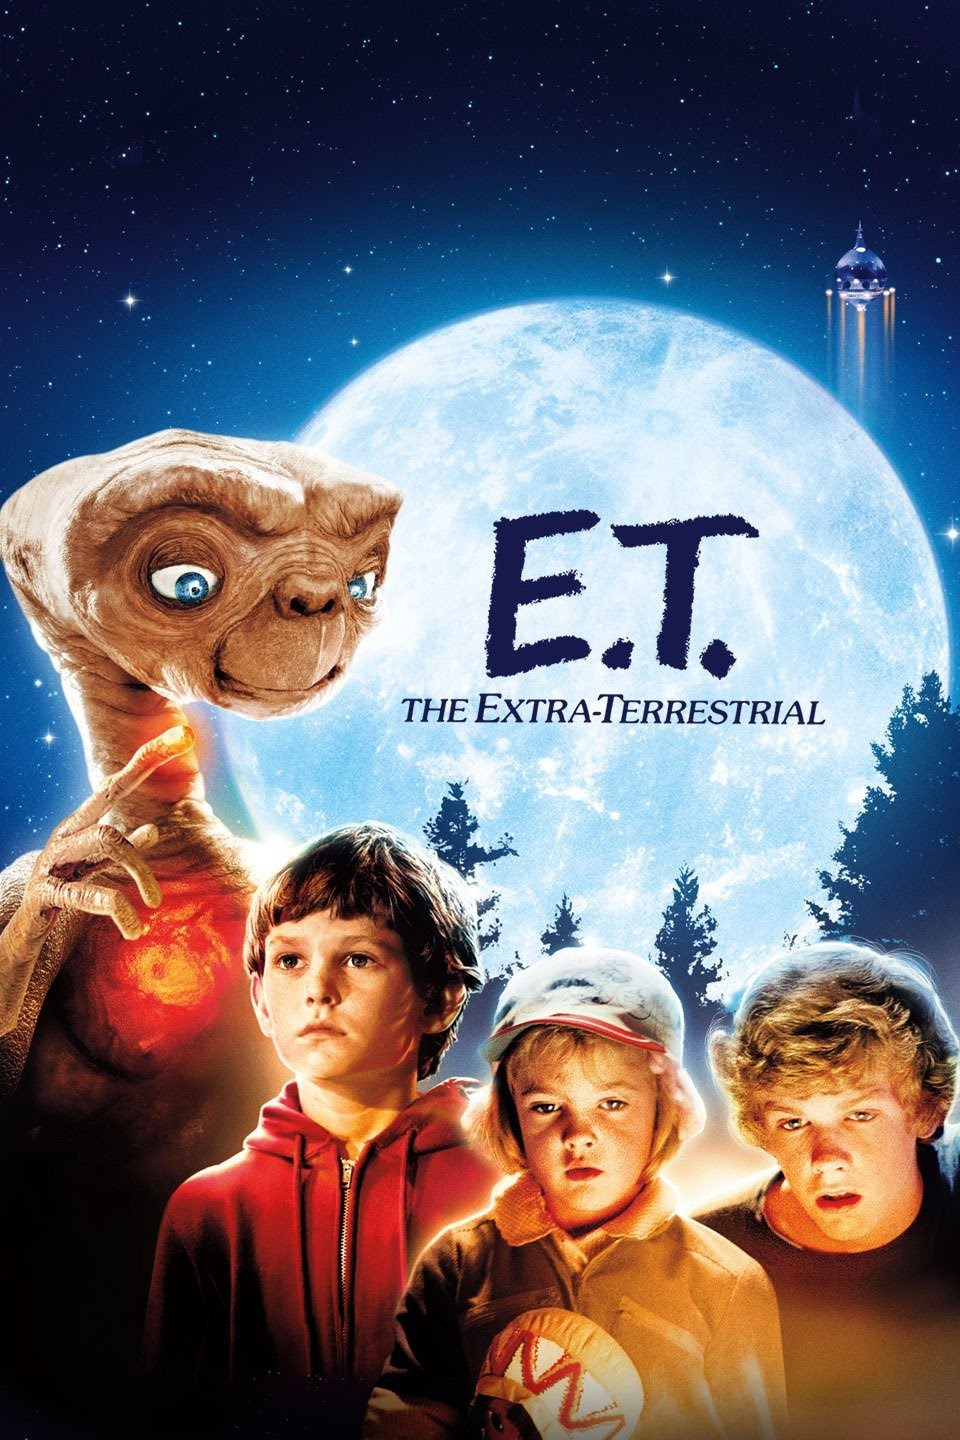 03/20/2021 - E.T (The Extra Terrestrial)